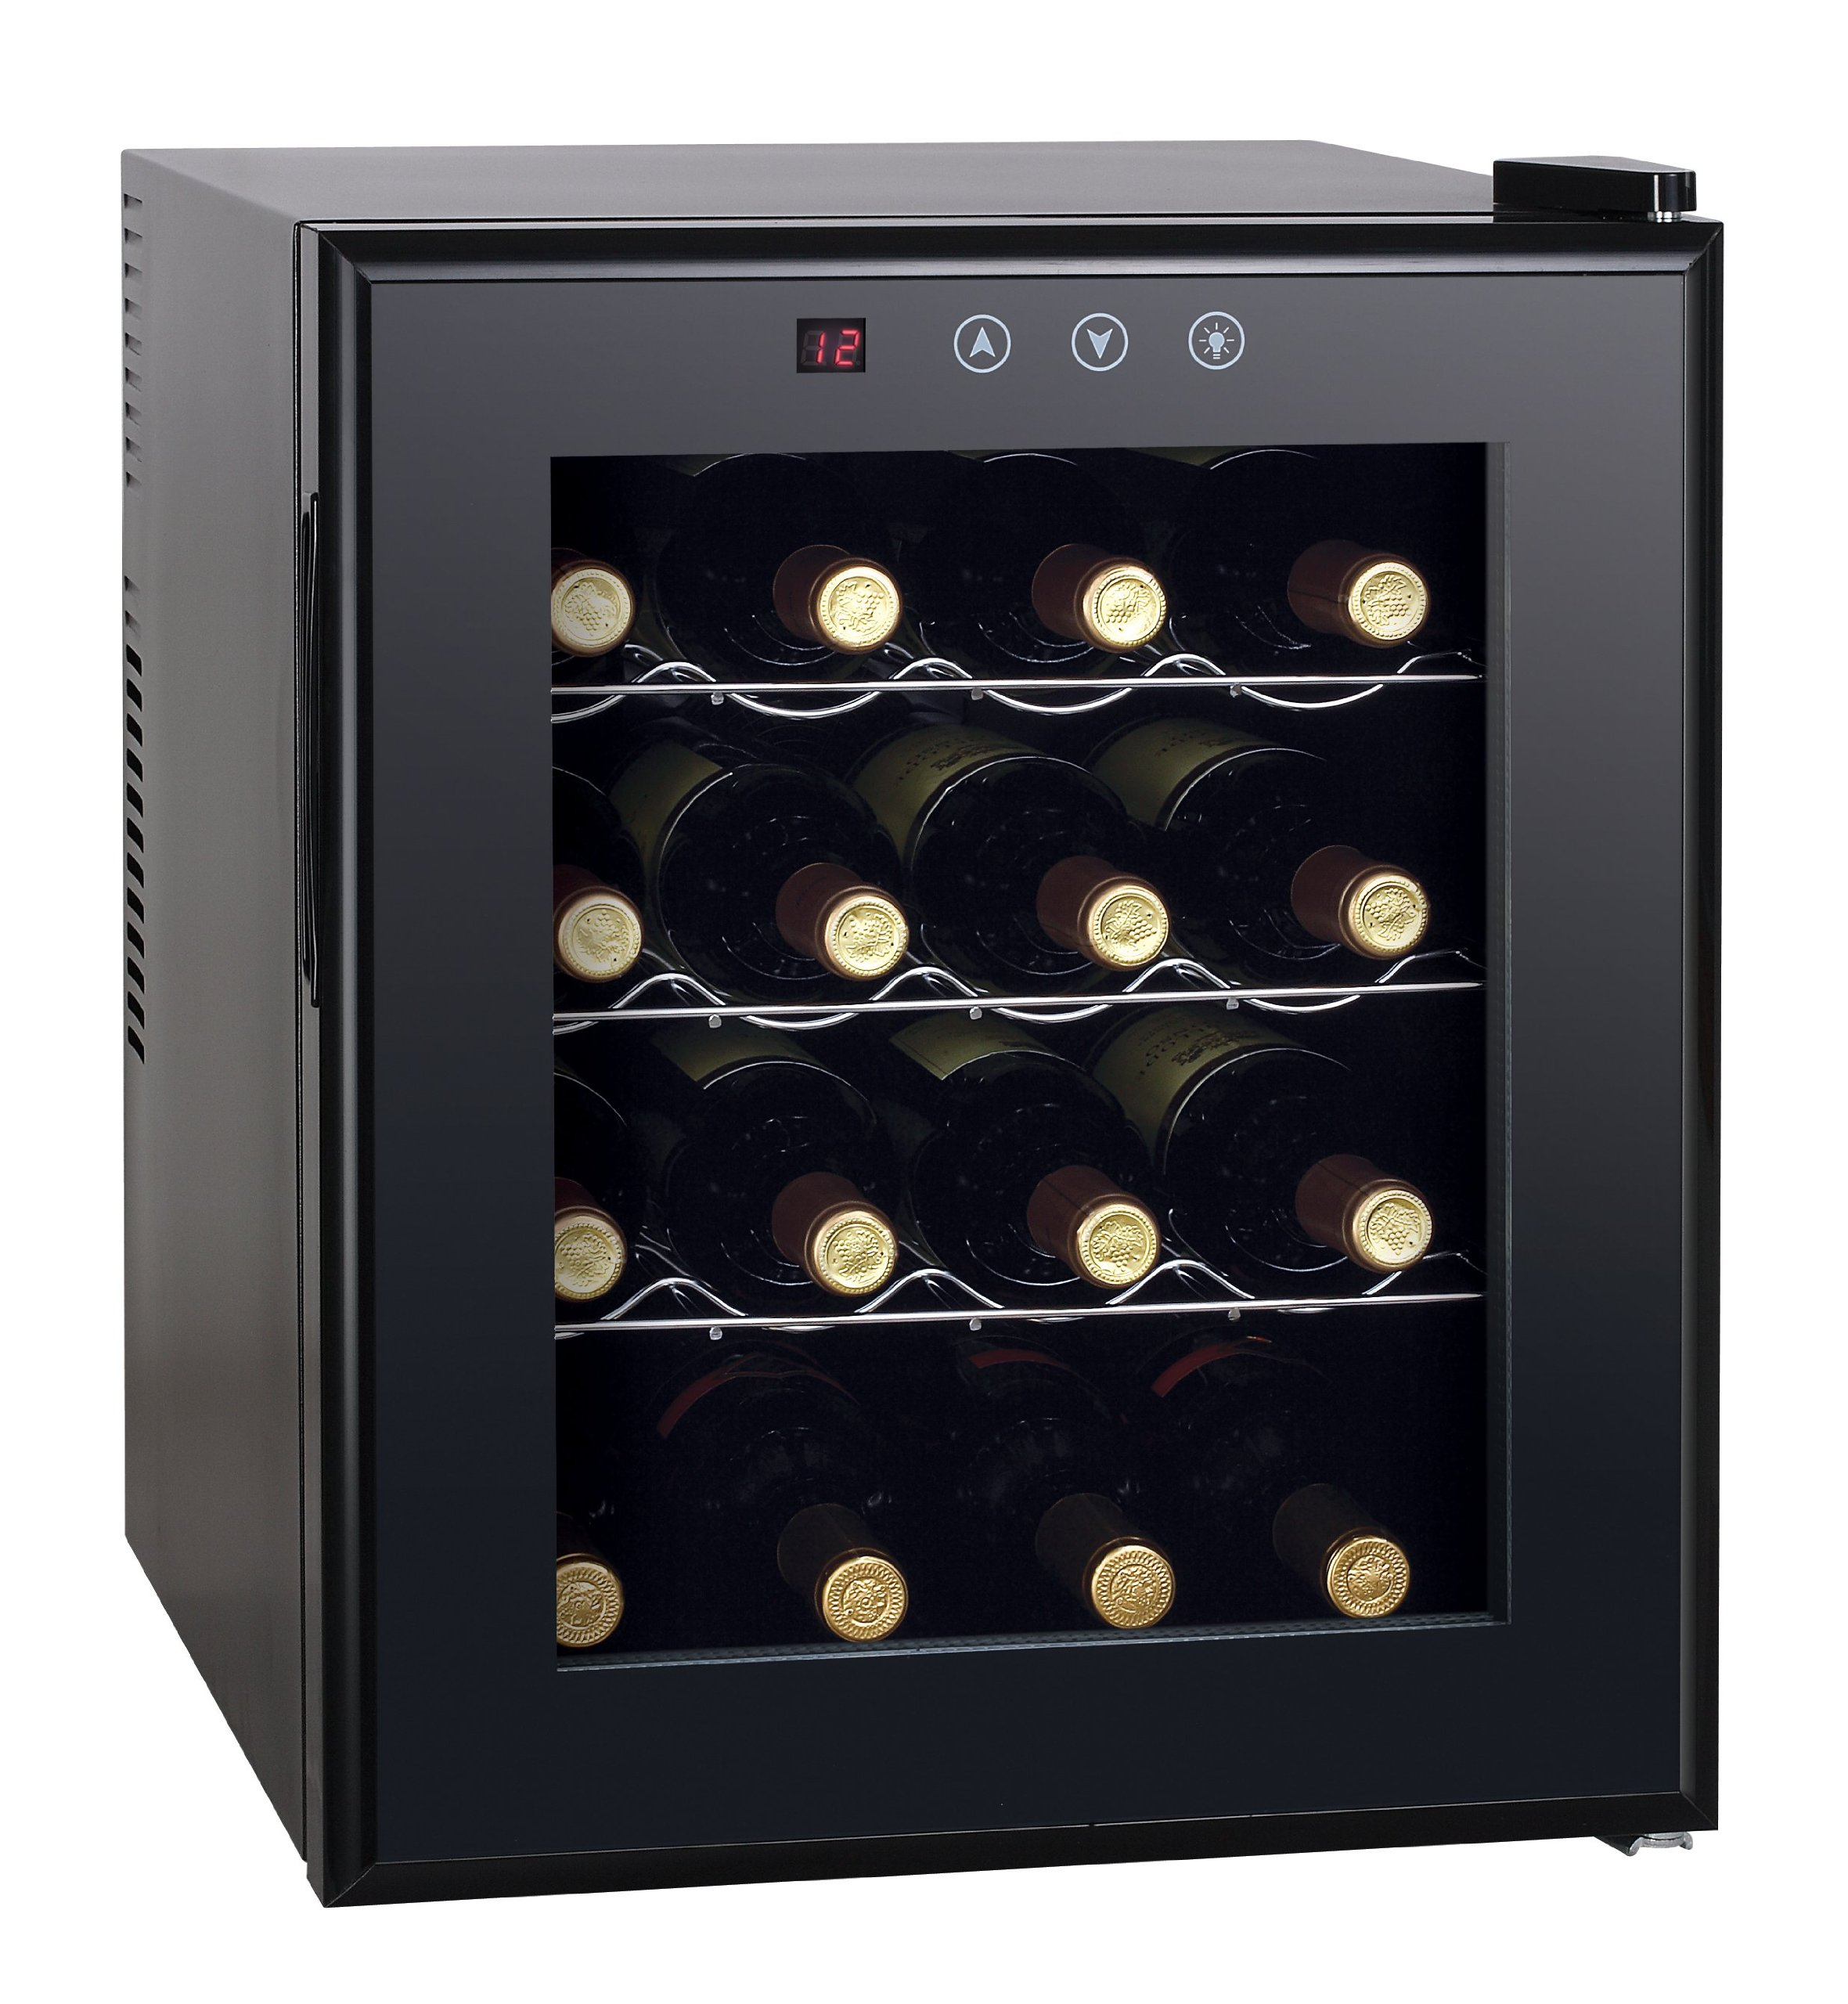 Spt Thermo-Electric Wine Cooler with Heating, 16-Bottles